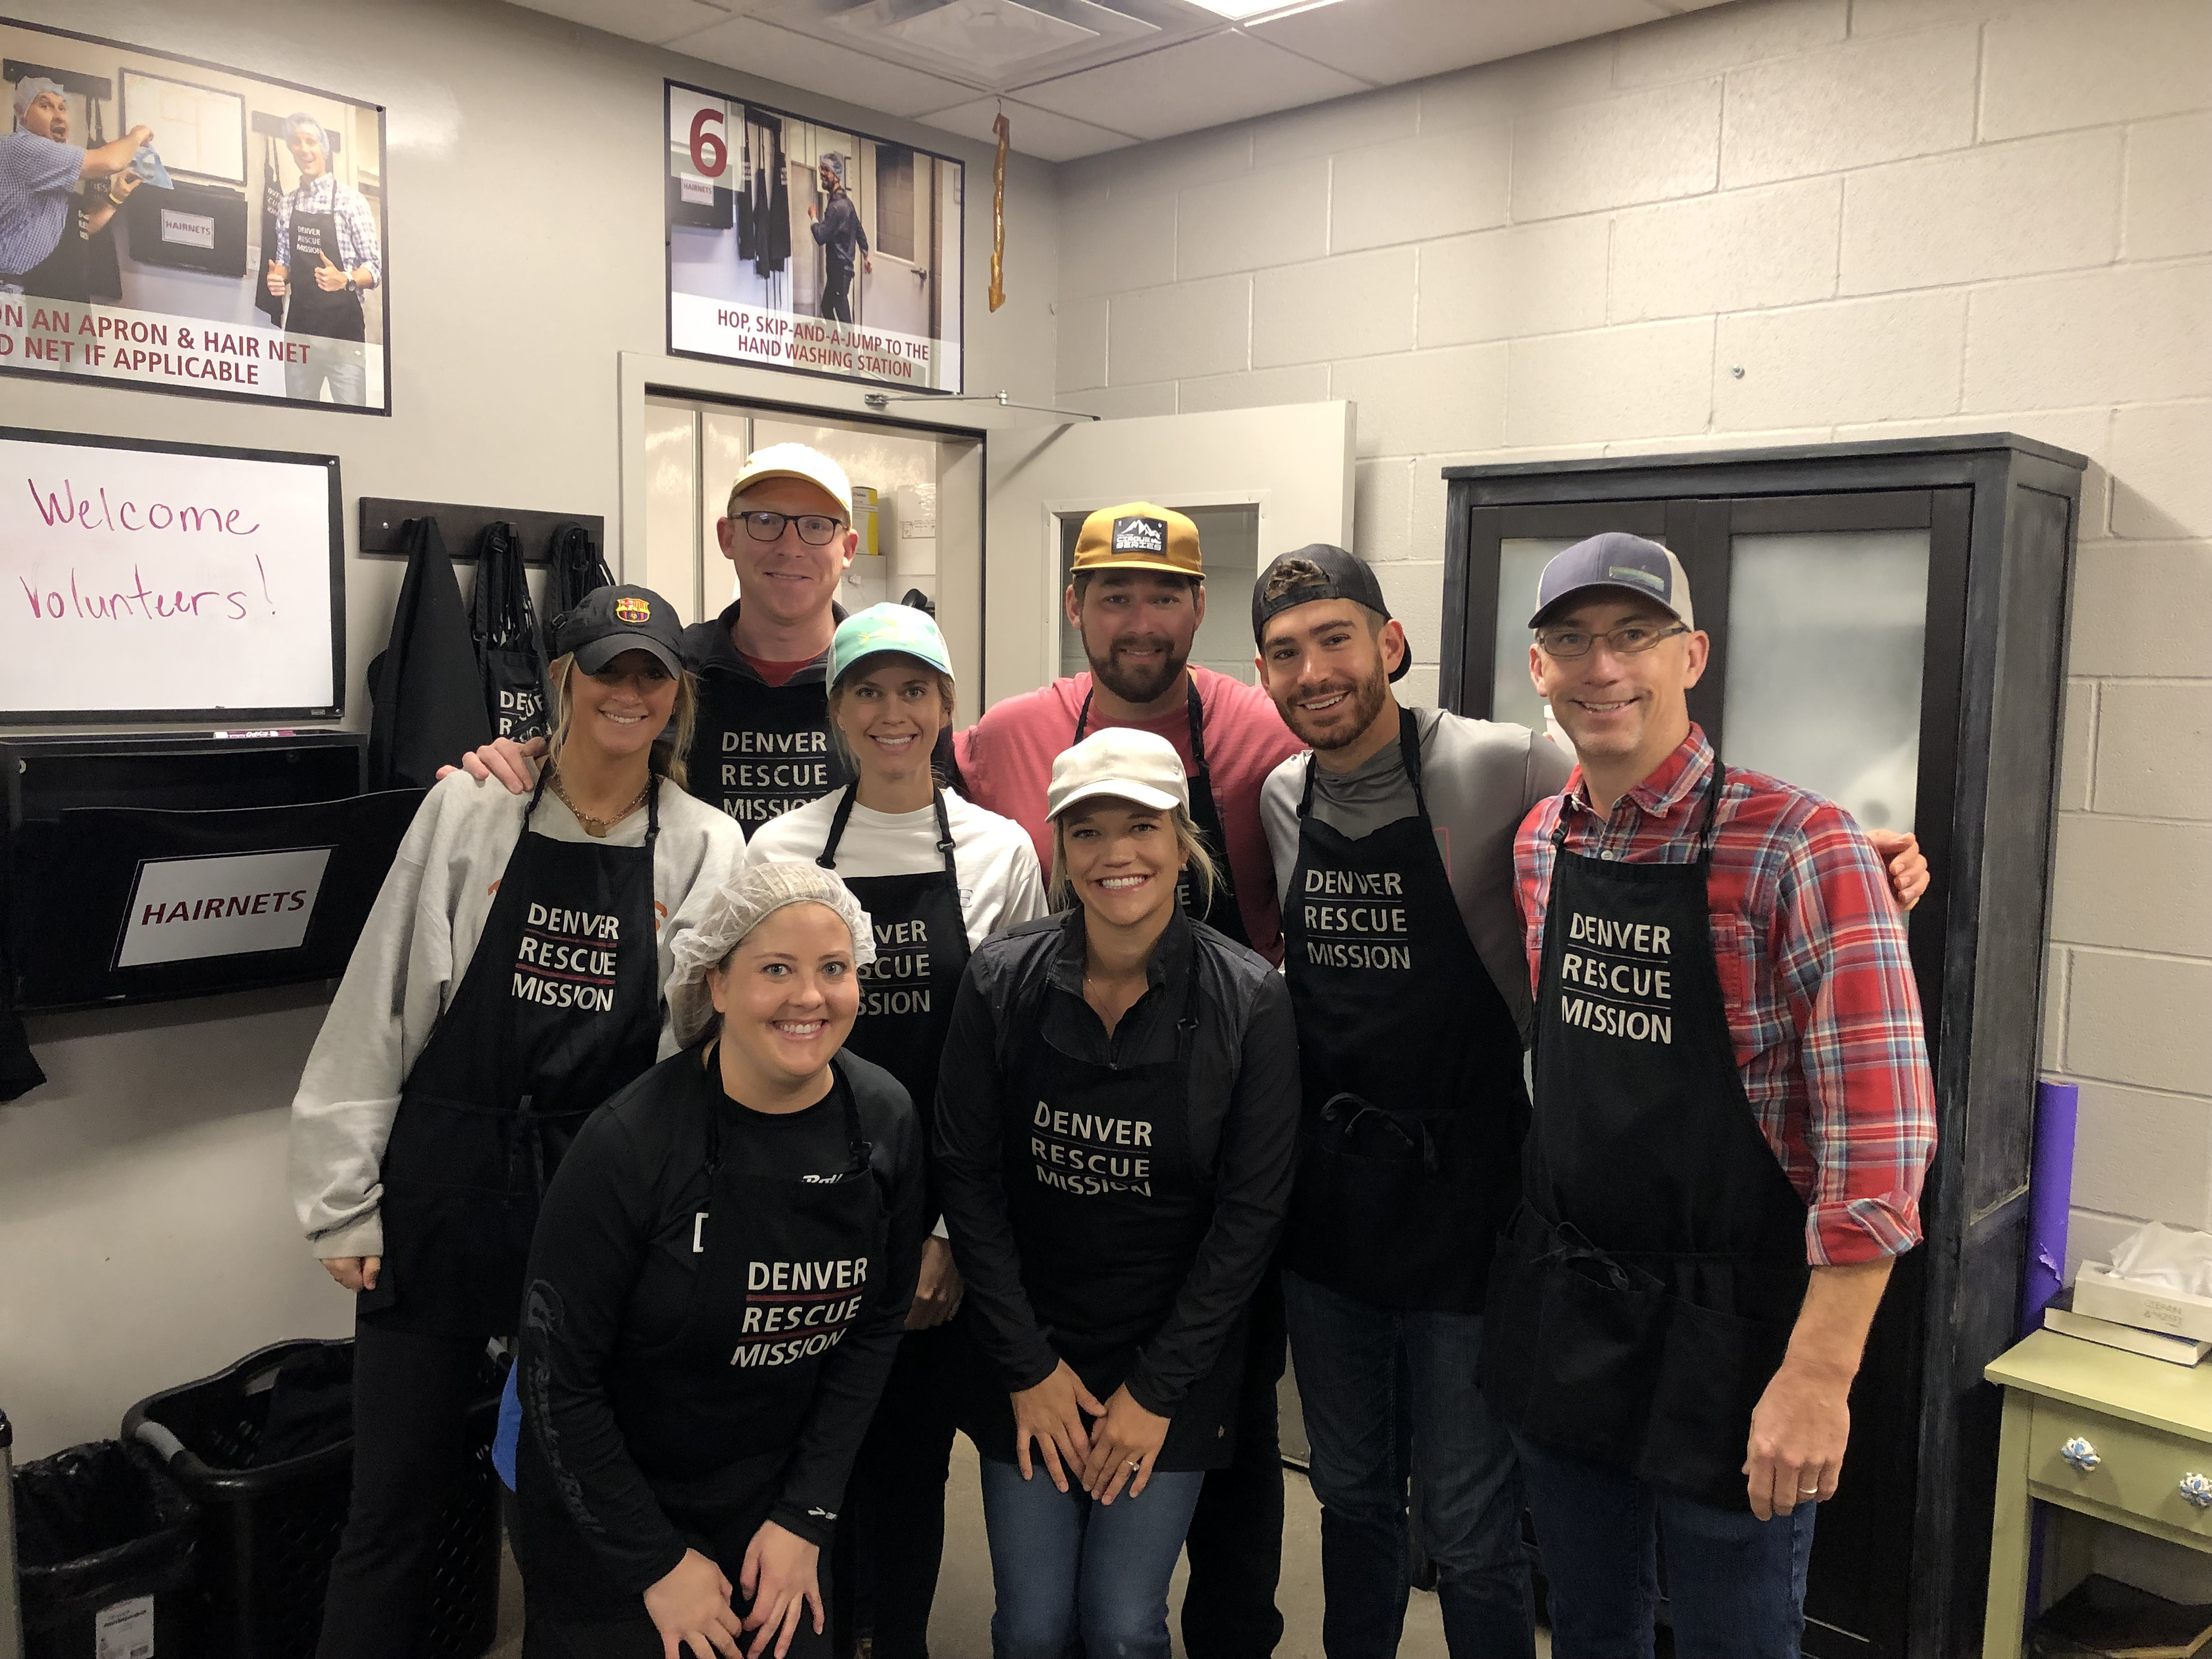 The Tributary team volunteering at Denver Rescue Mission